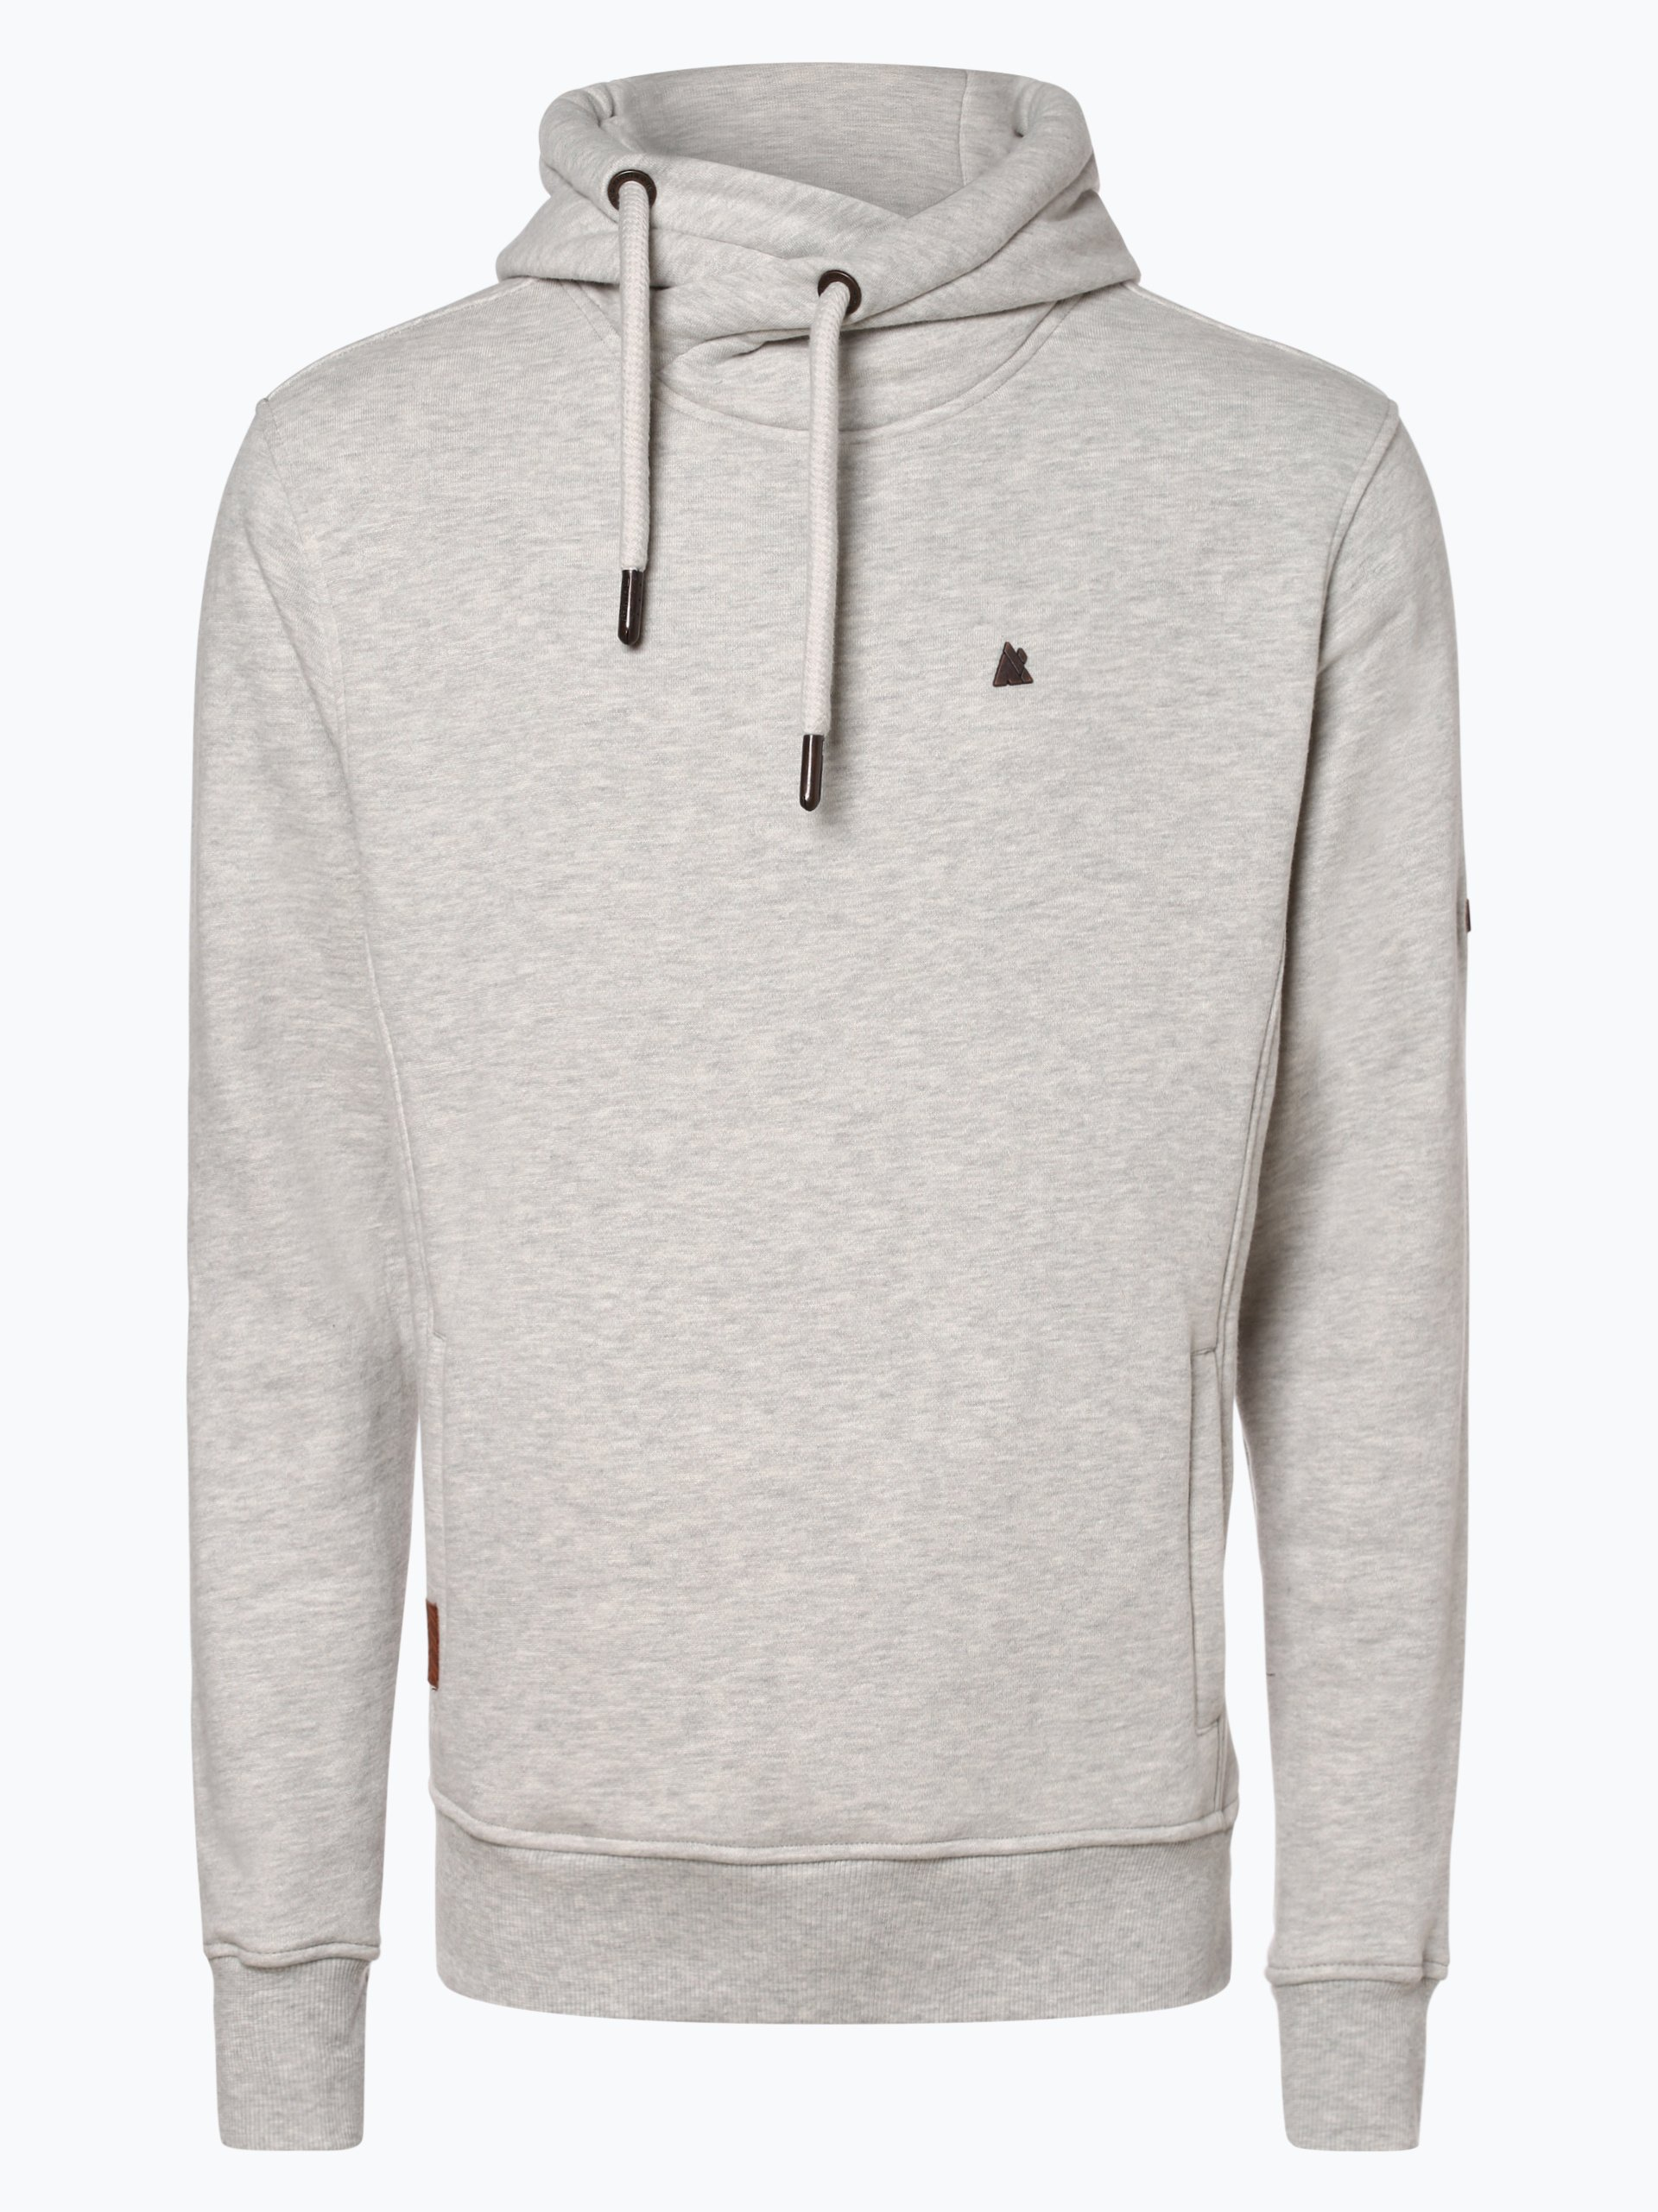 alife and kickin Herren Sweatshirt - Johnson